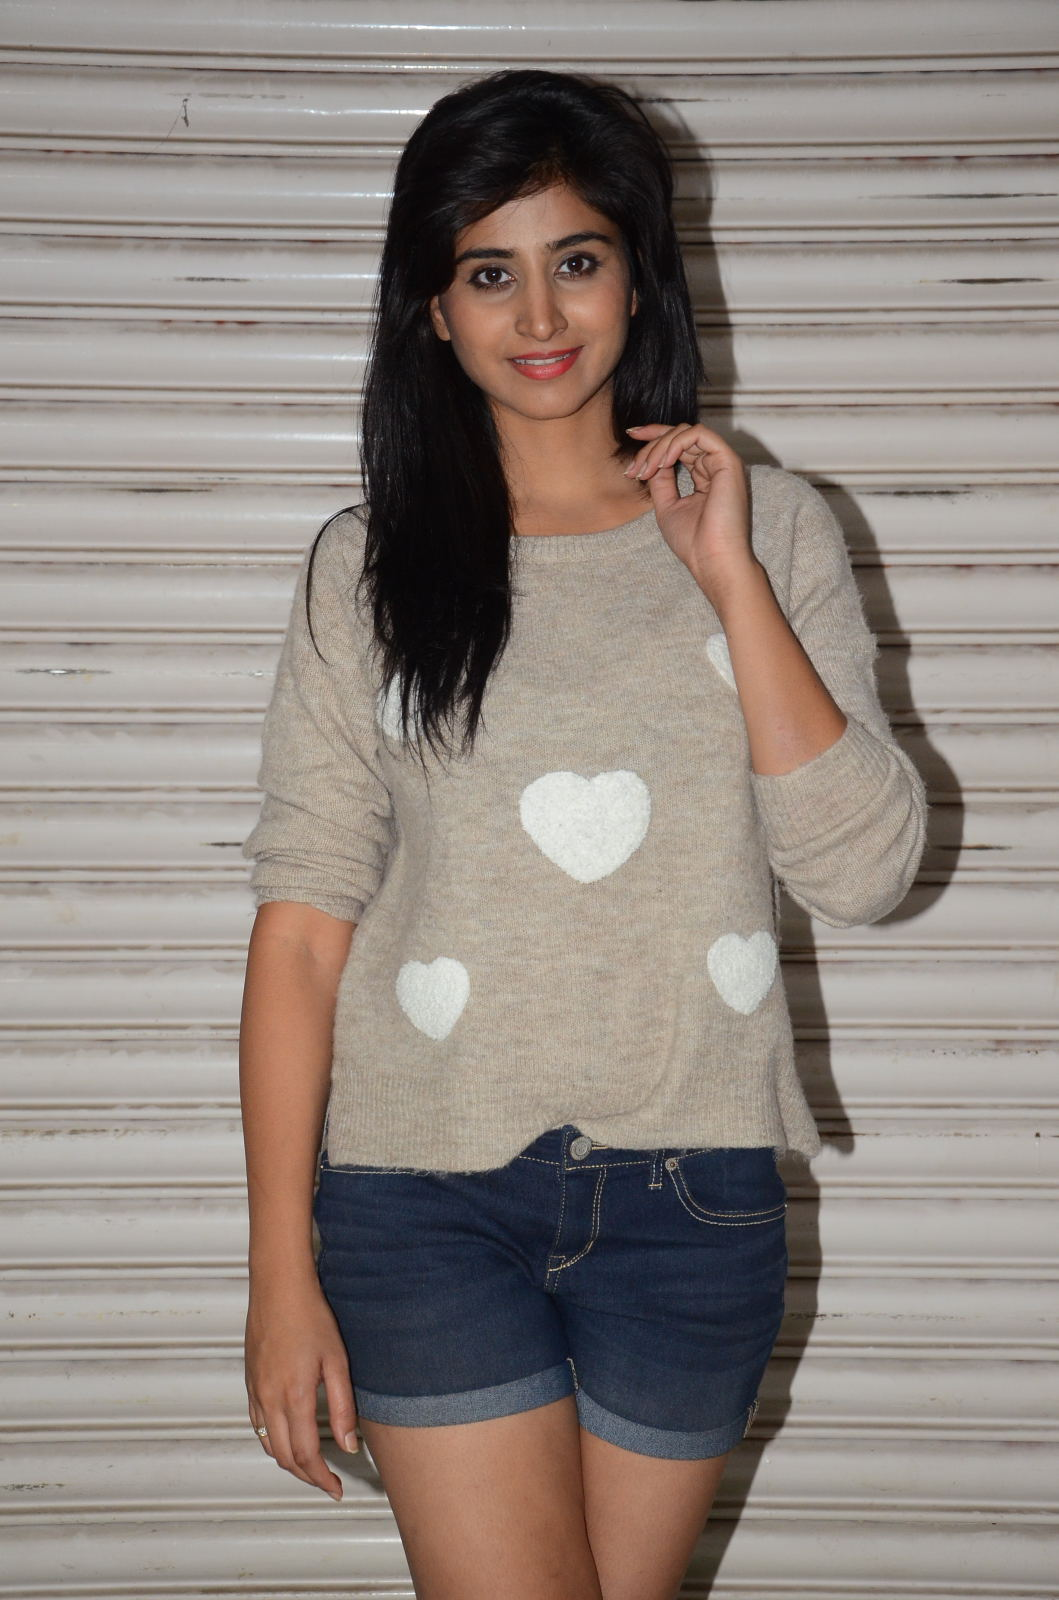 Shamili new cute photos gallery-HQ-Photo-20